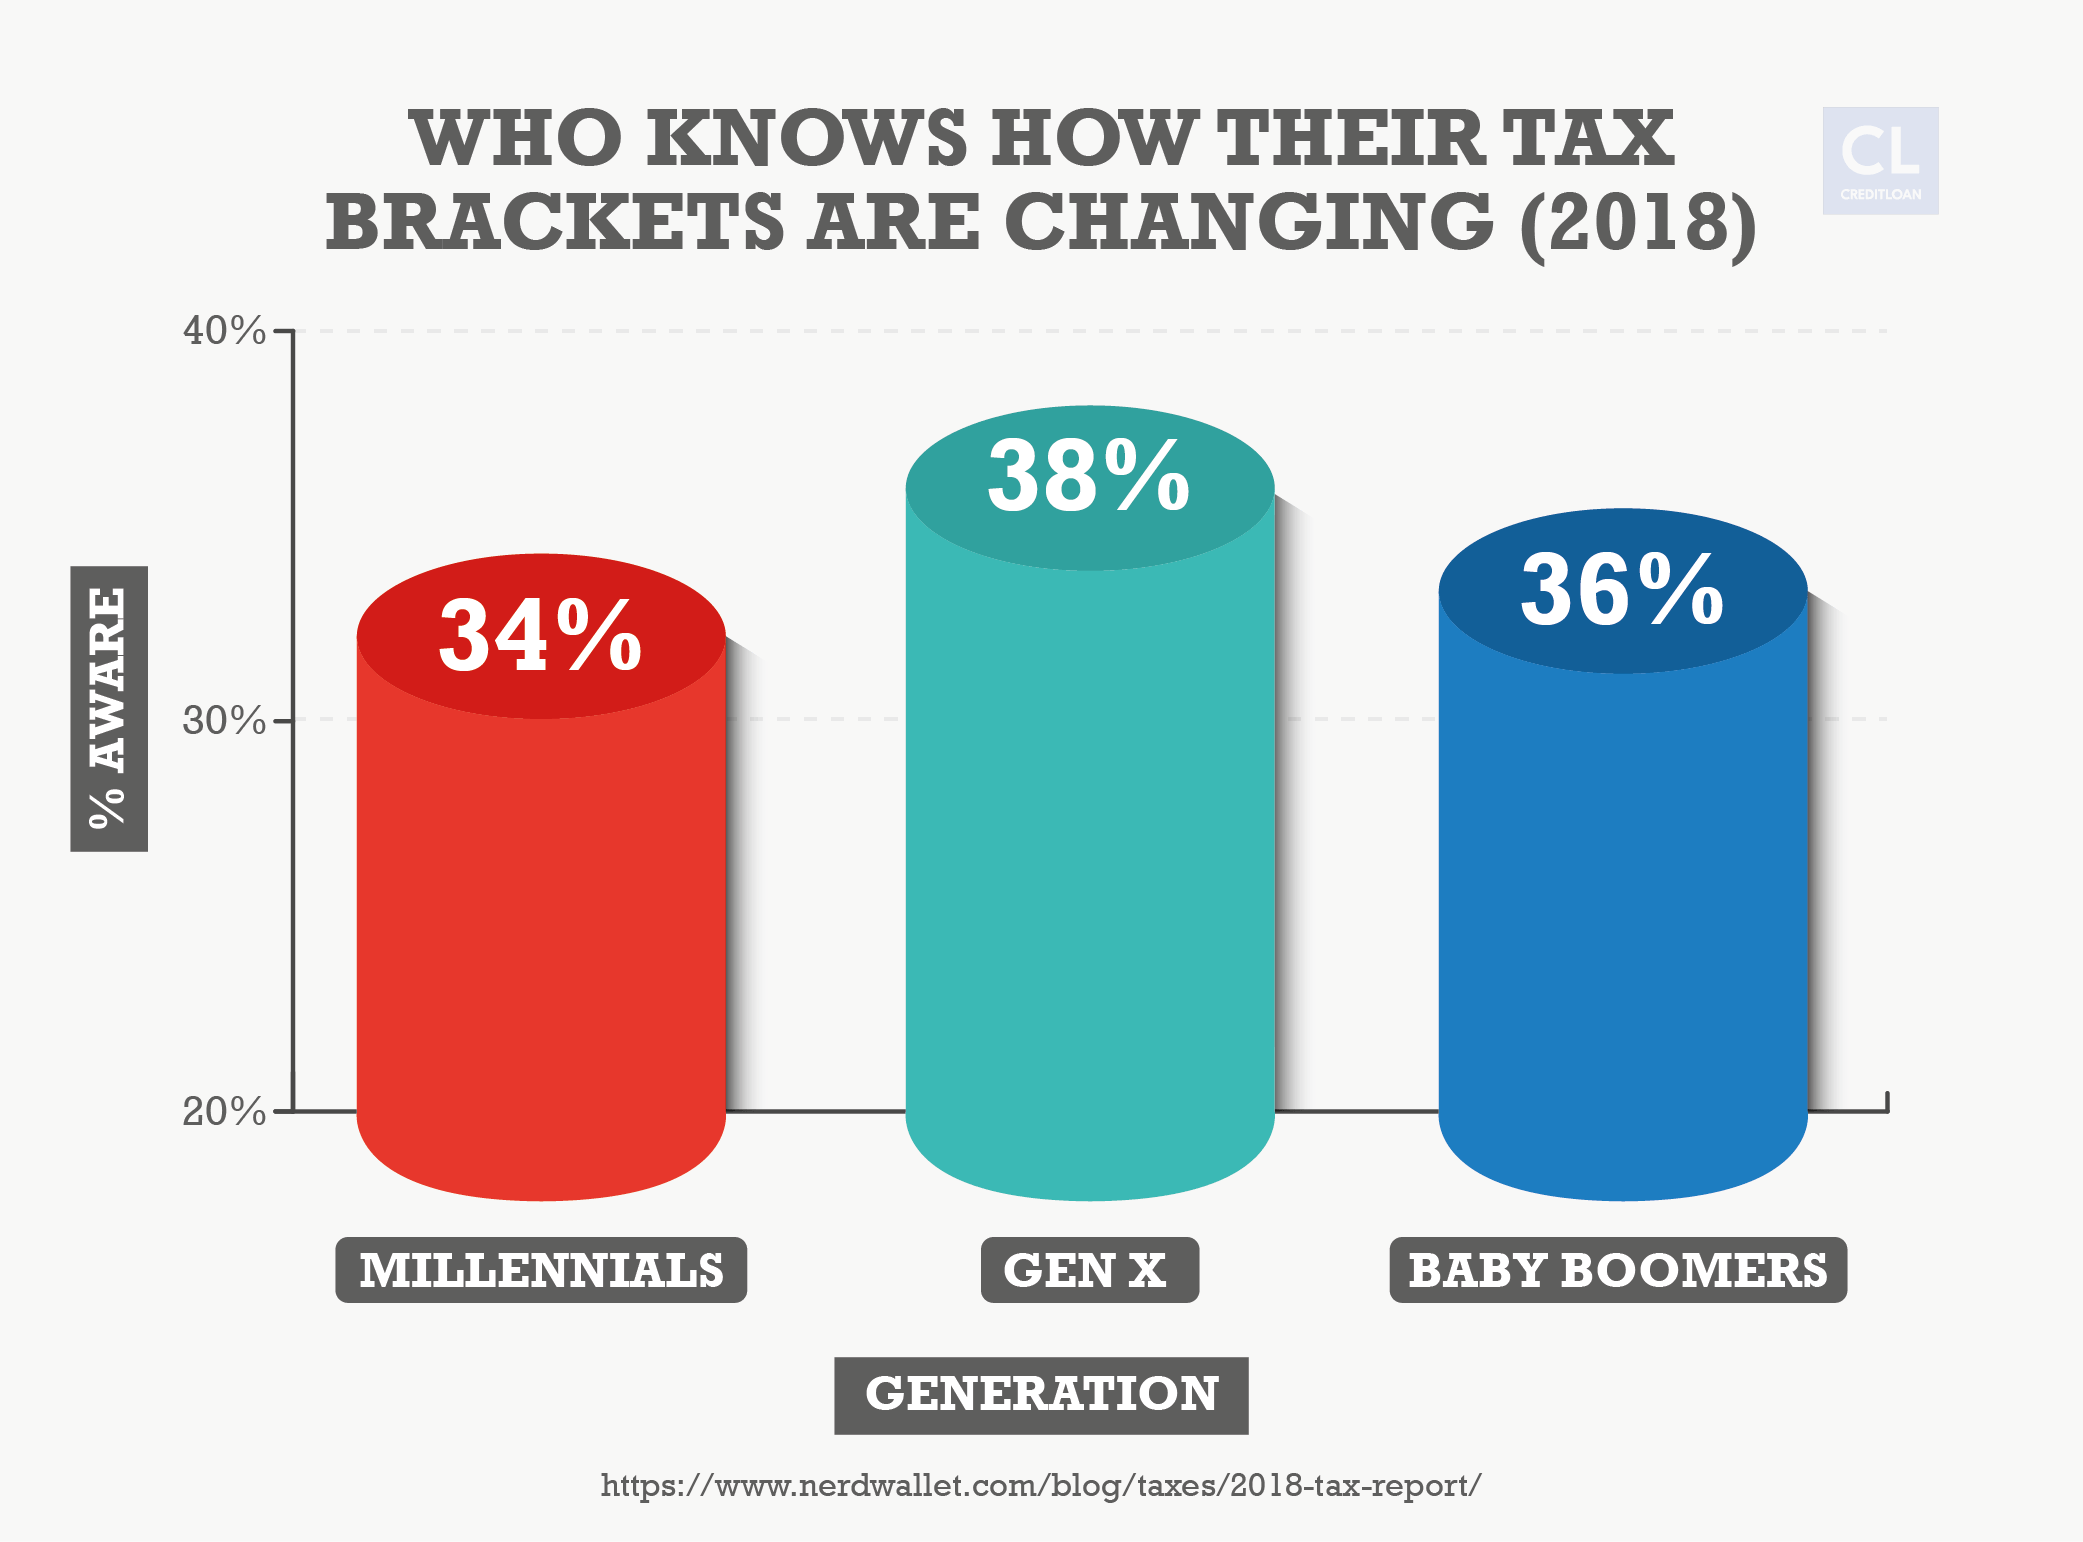 Data Showing Who Knows How Their Tax Brackets are Changing